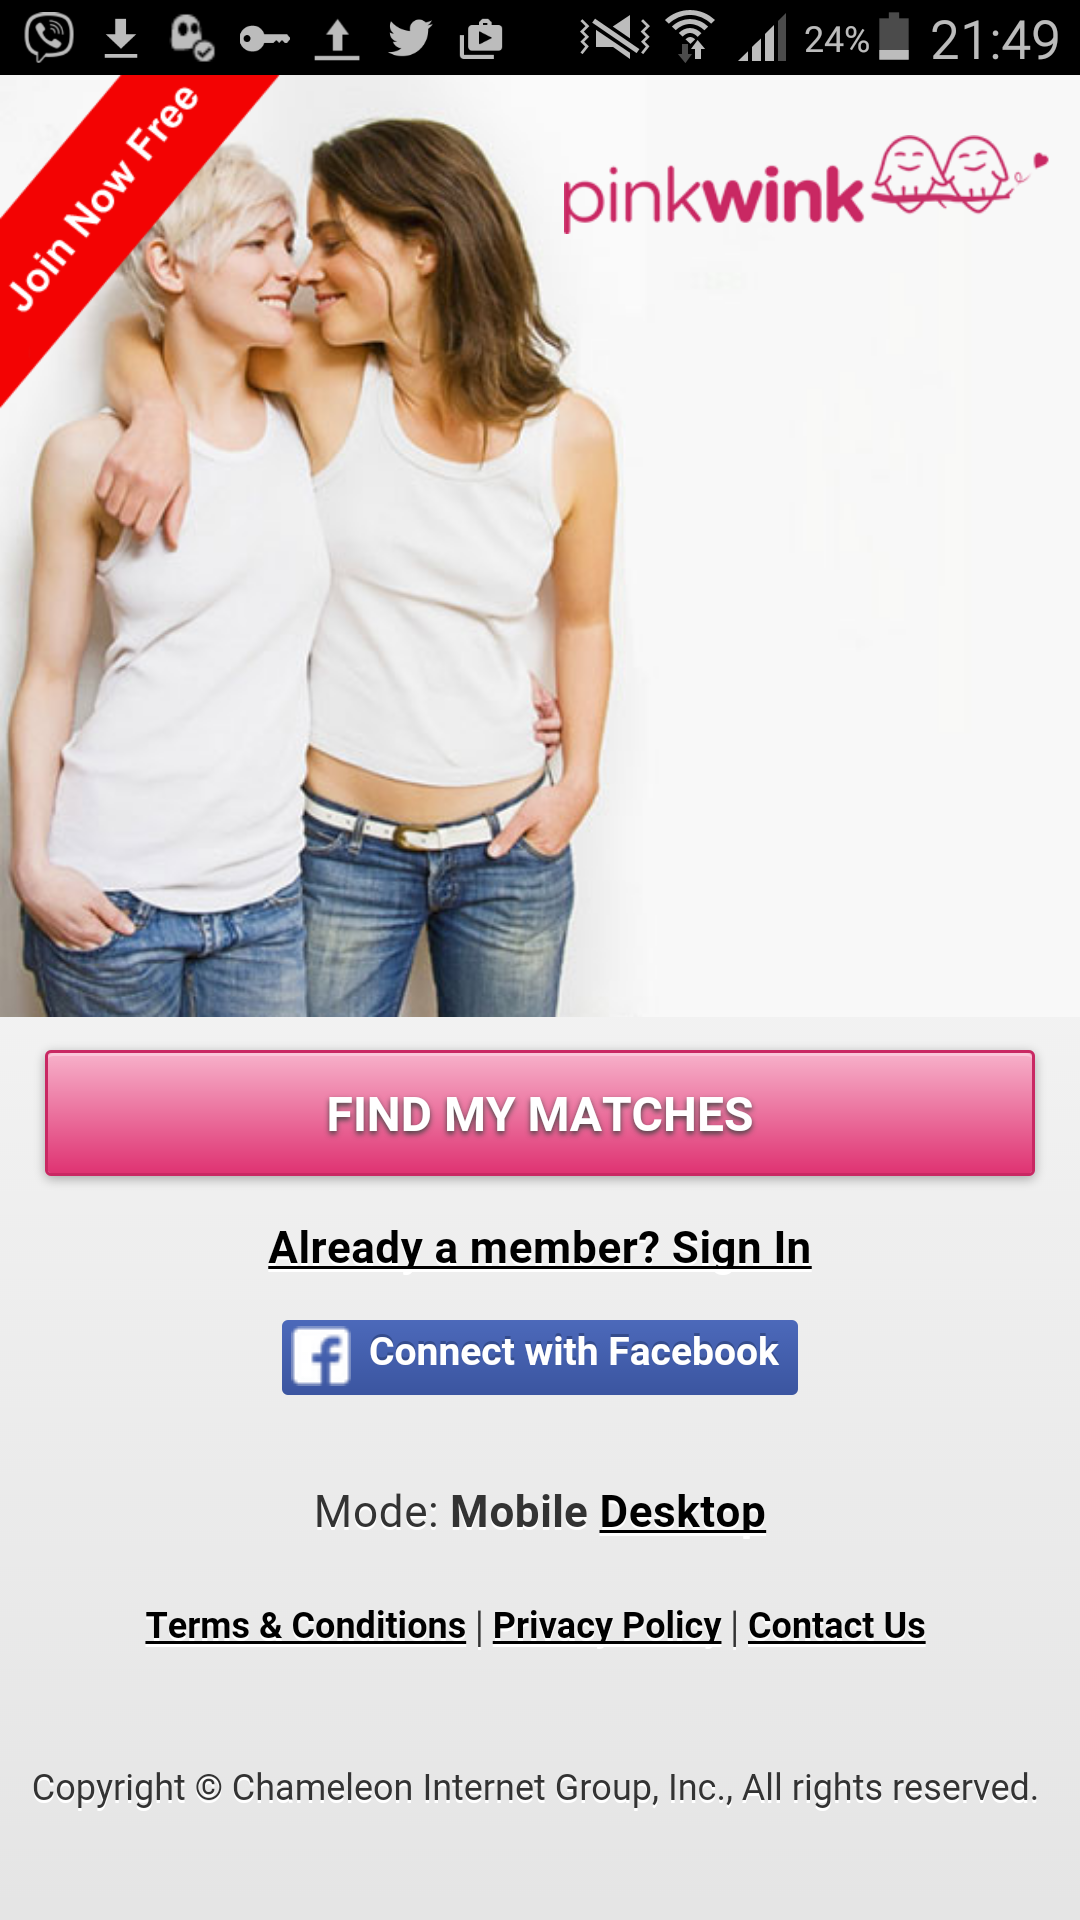 camino lesbian dating site Meet foresthill singles online & chat in the forums dhu is a 100% free dating site to find personals & casual encounters in foresthill.